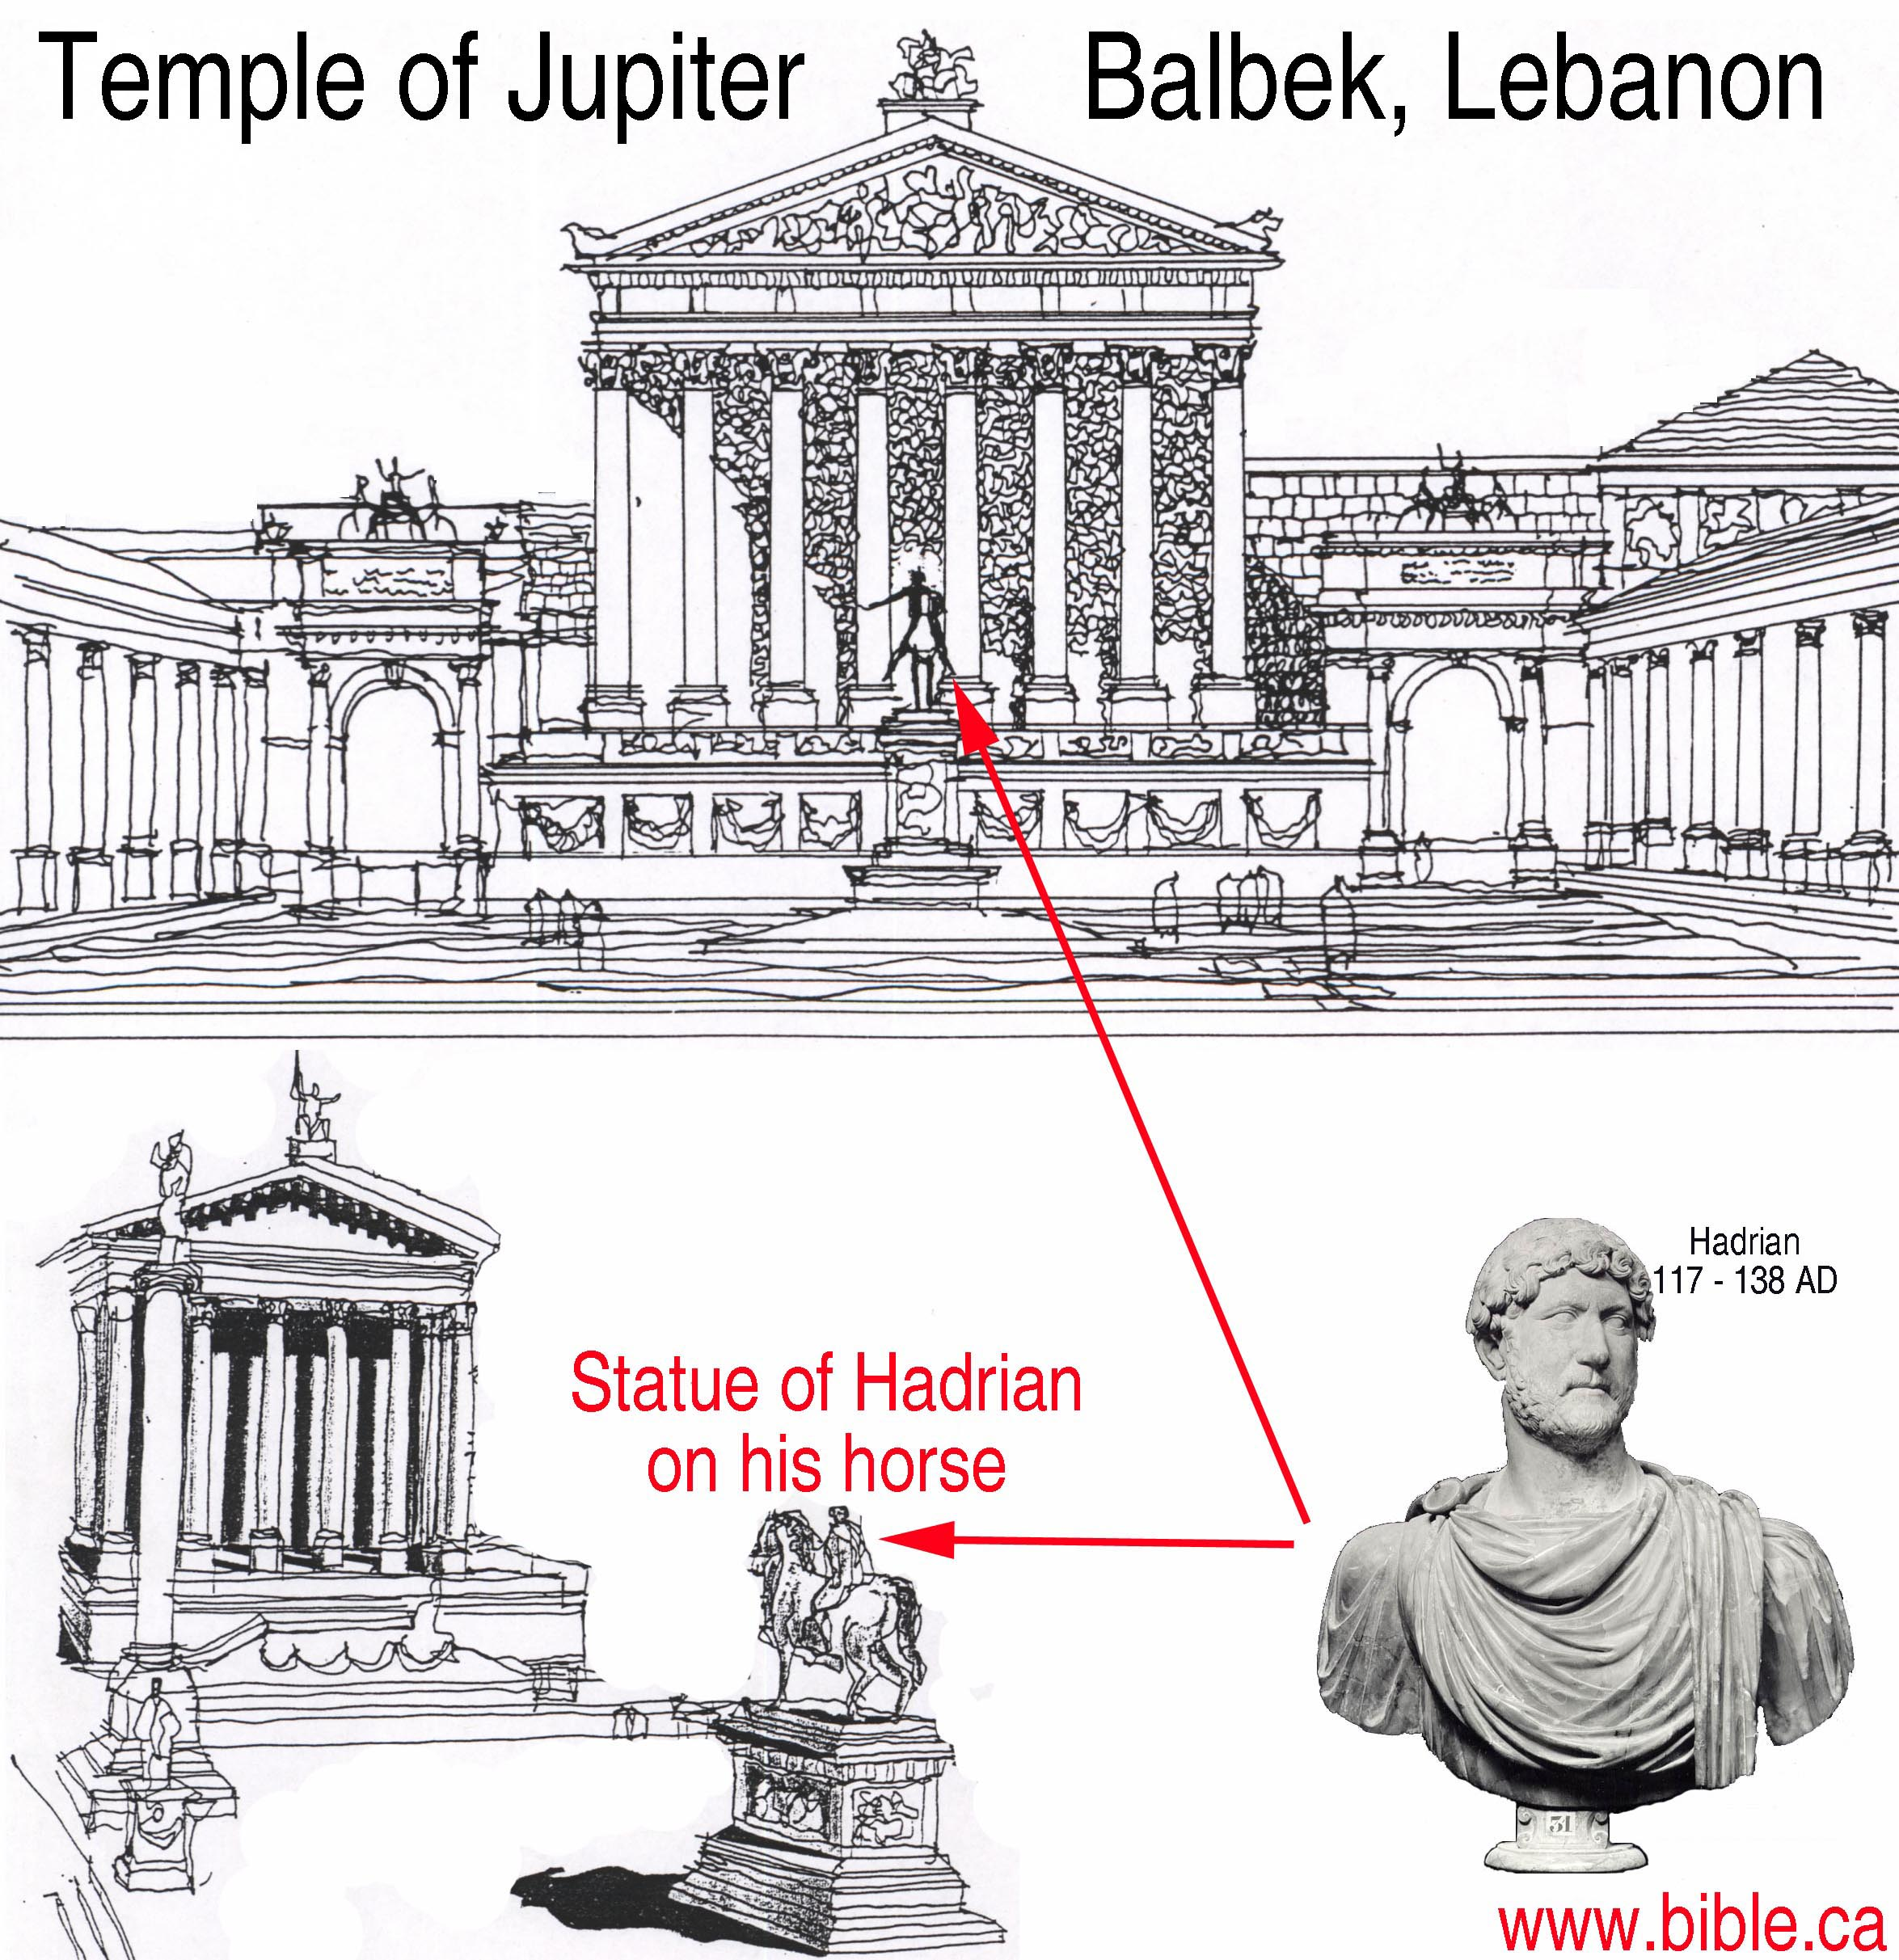 Temple of Jupiter Baalbek, Temple of Jupiter in Baalbek, Lebanon, (Hadrian 135 AD)